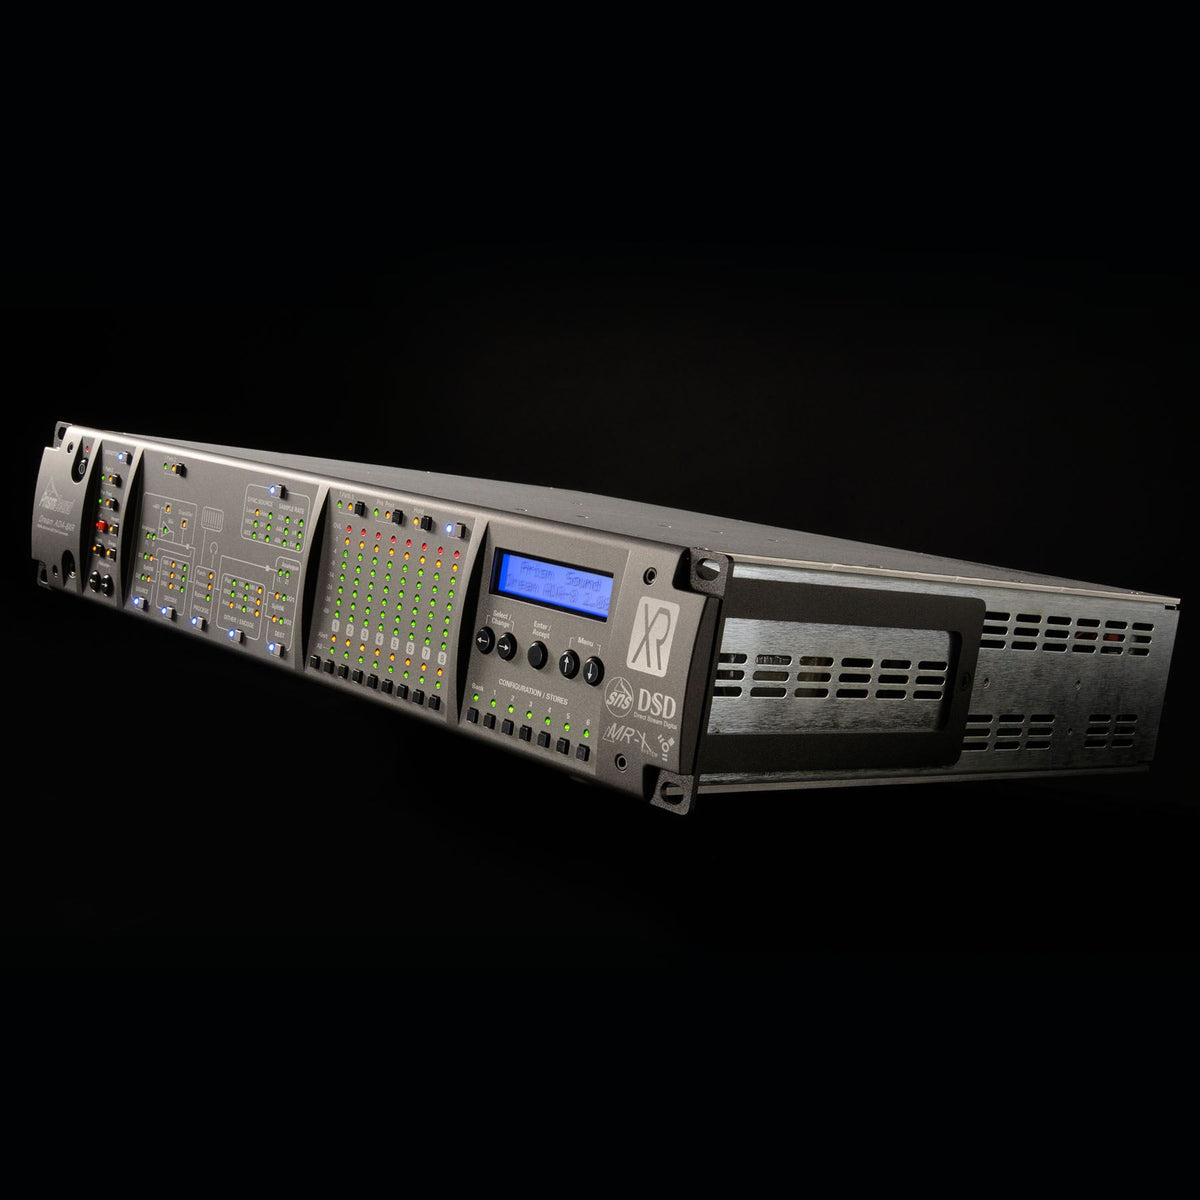 Prism Audio Dream Series ADA-8XR with 16 Channels of DA Conversion and Firewire Digital I/O Card